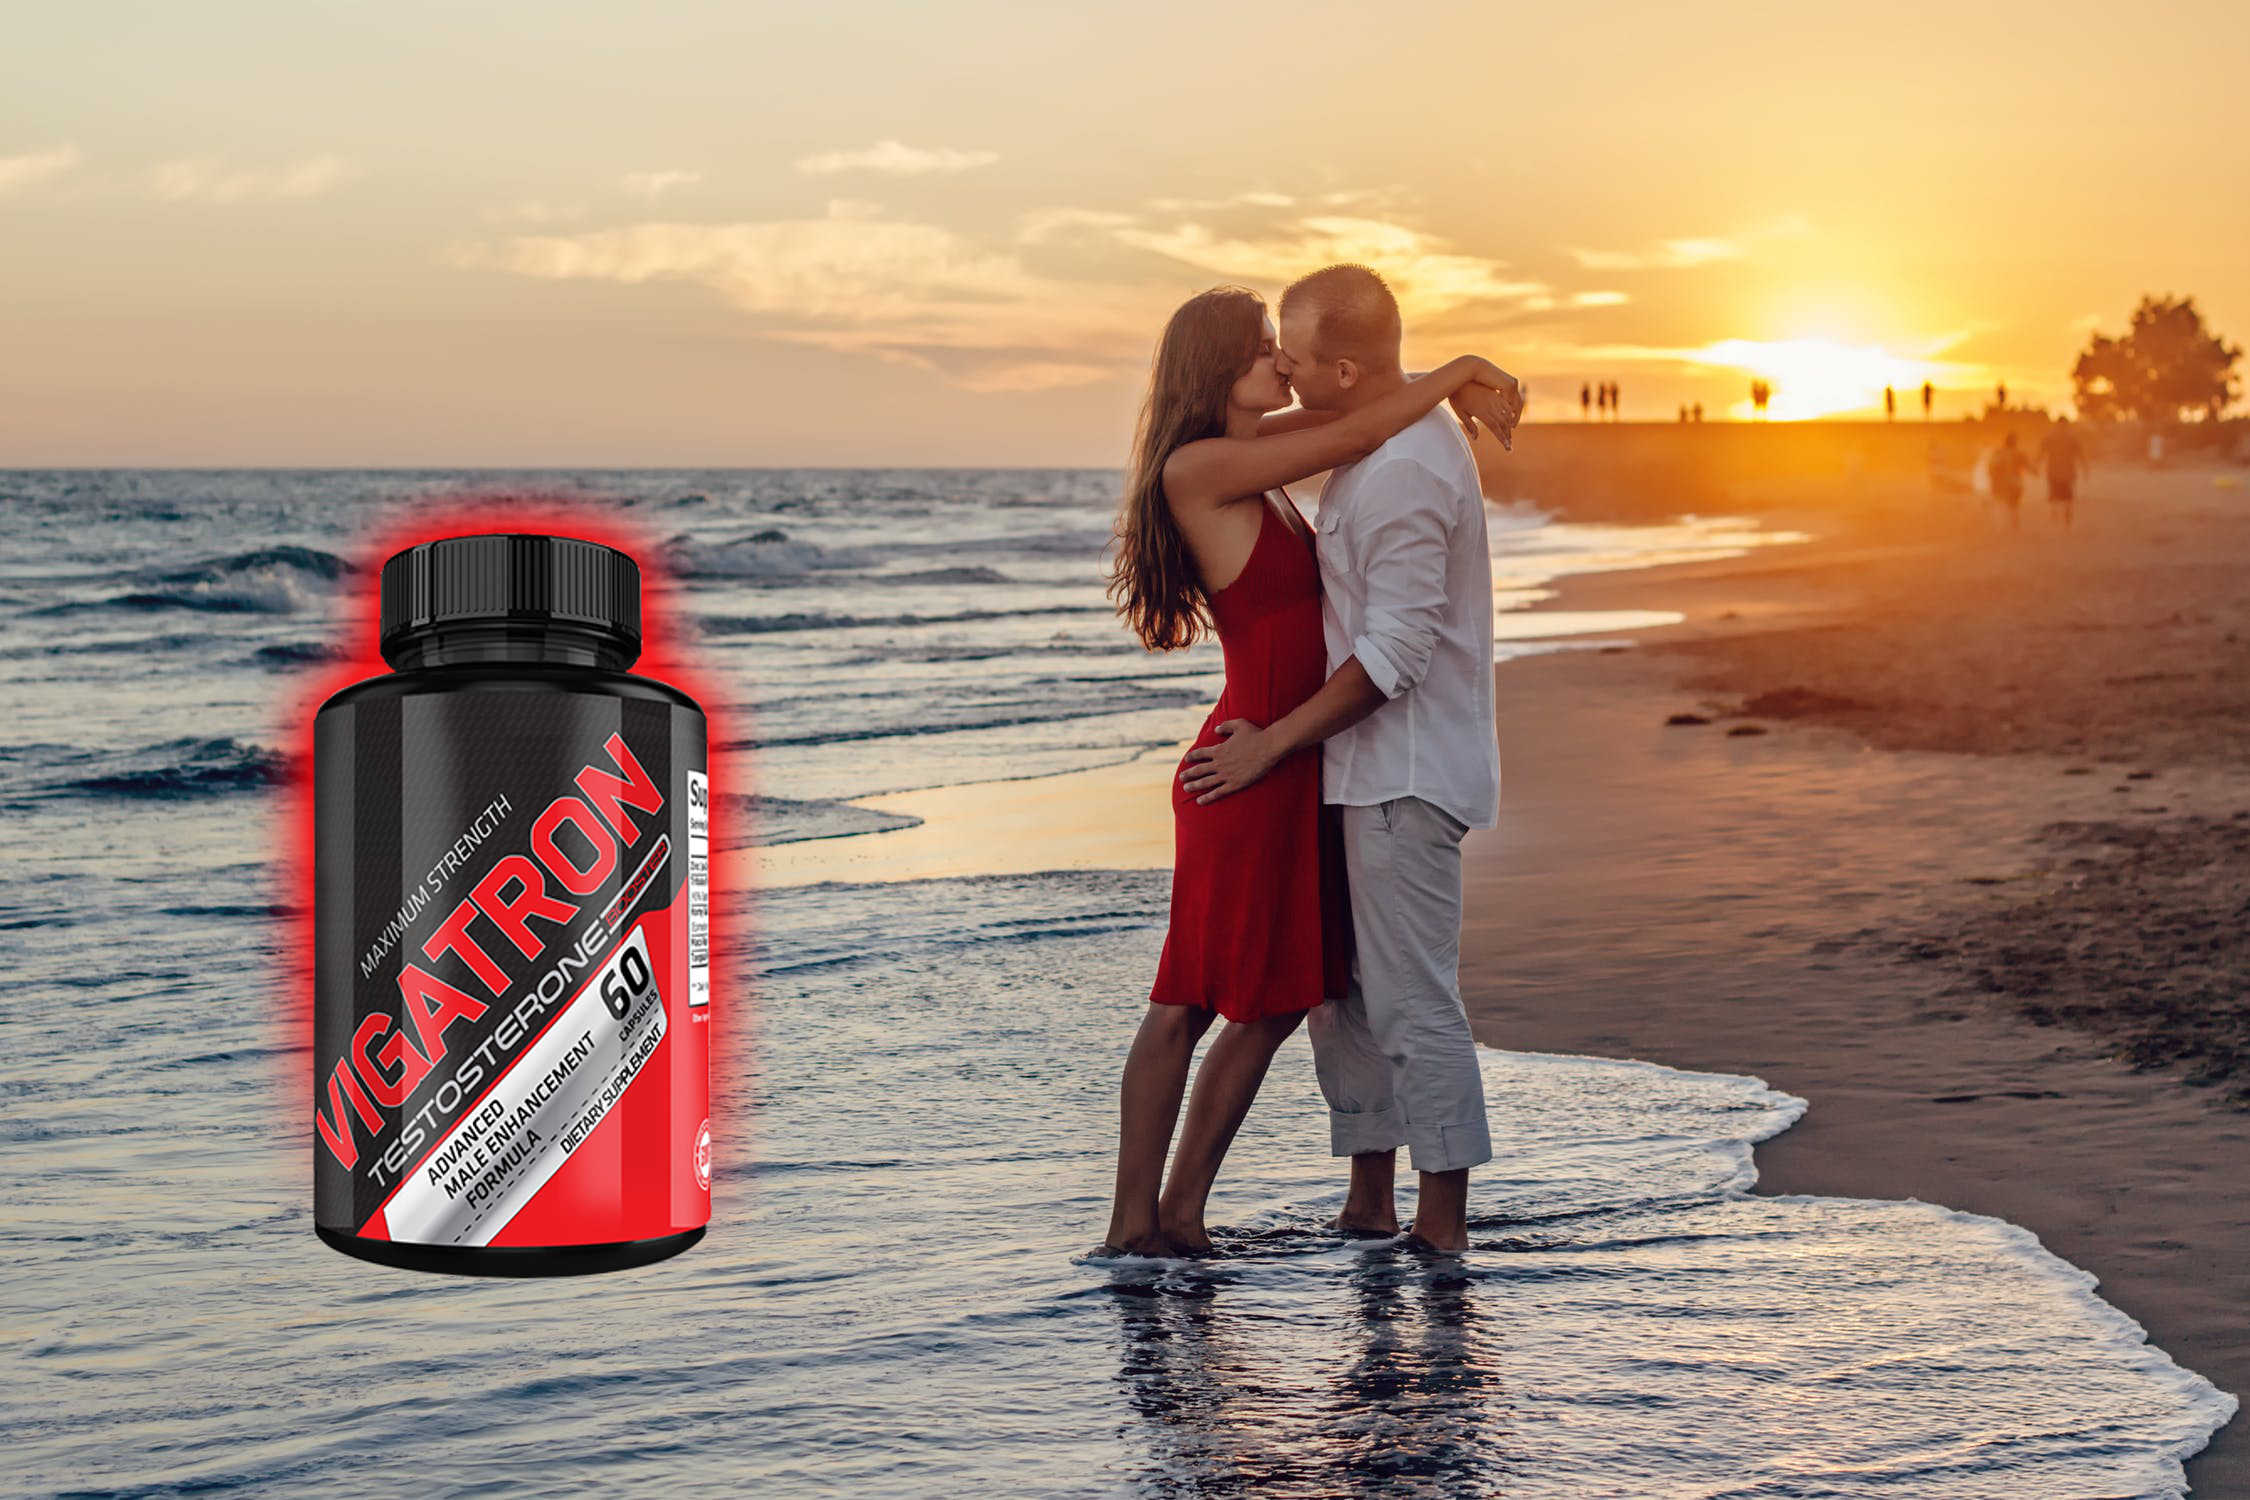 Vigatron Testosterone Booster: Does it Really Work? couple